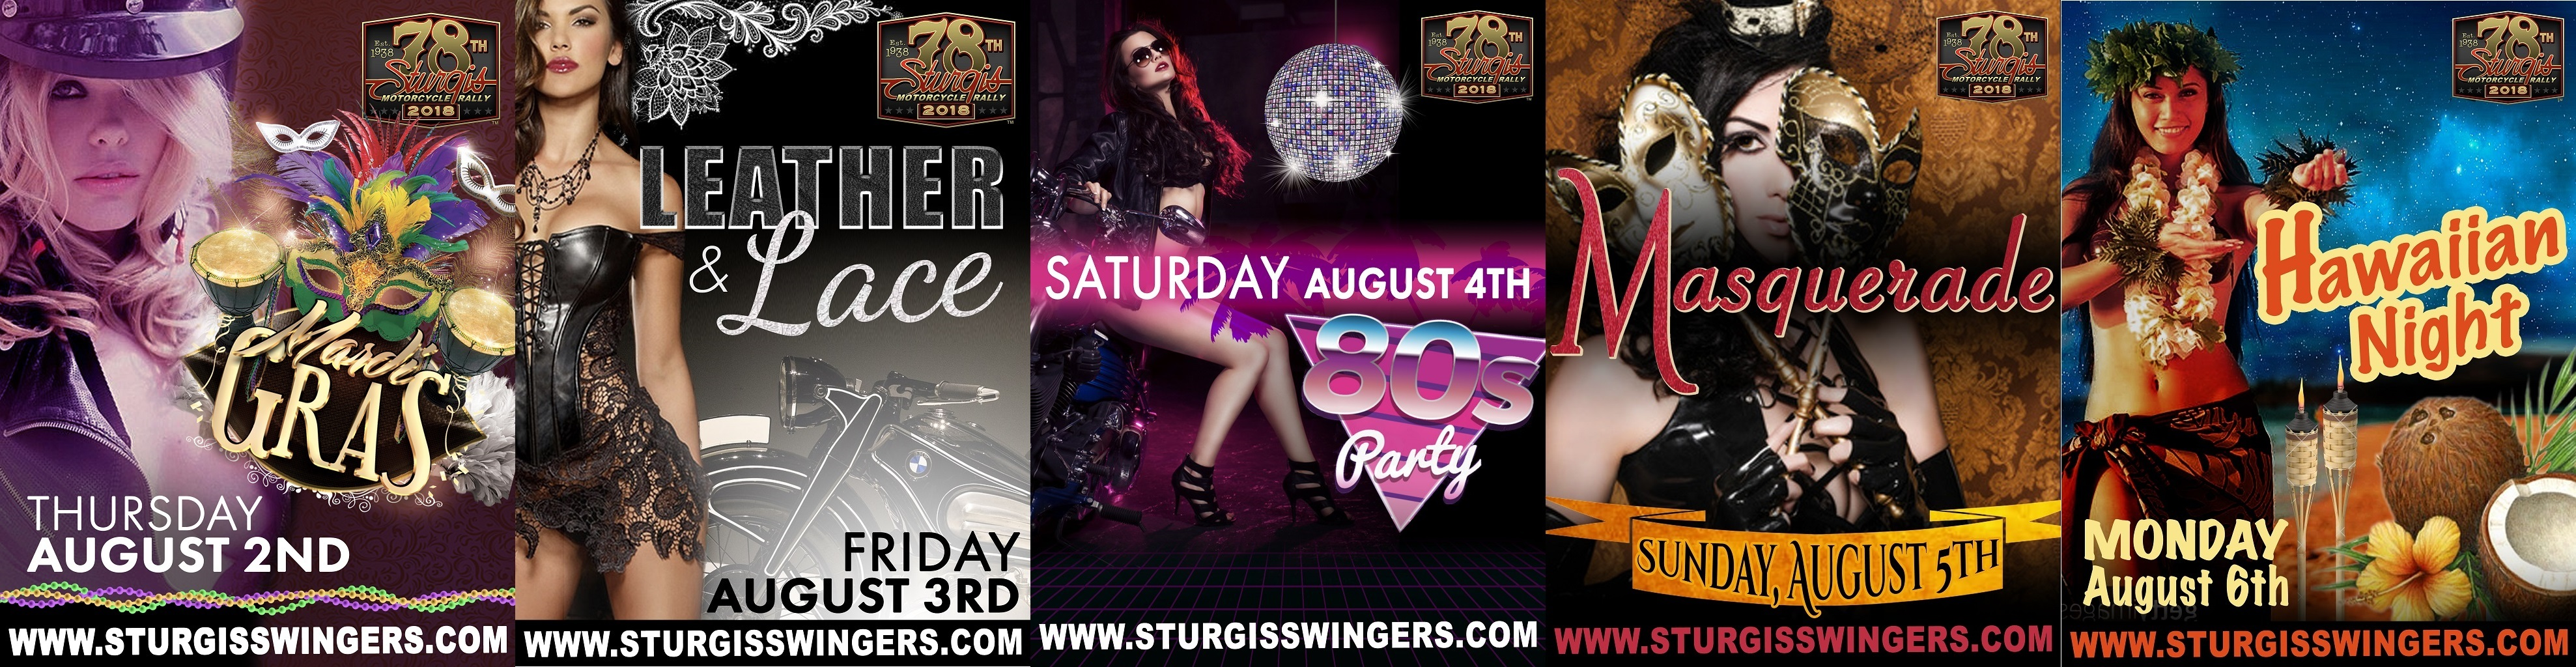 VISIT THE WILDEST PARTY AT STURGIS!!!